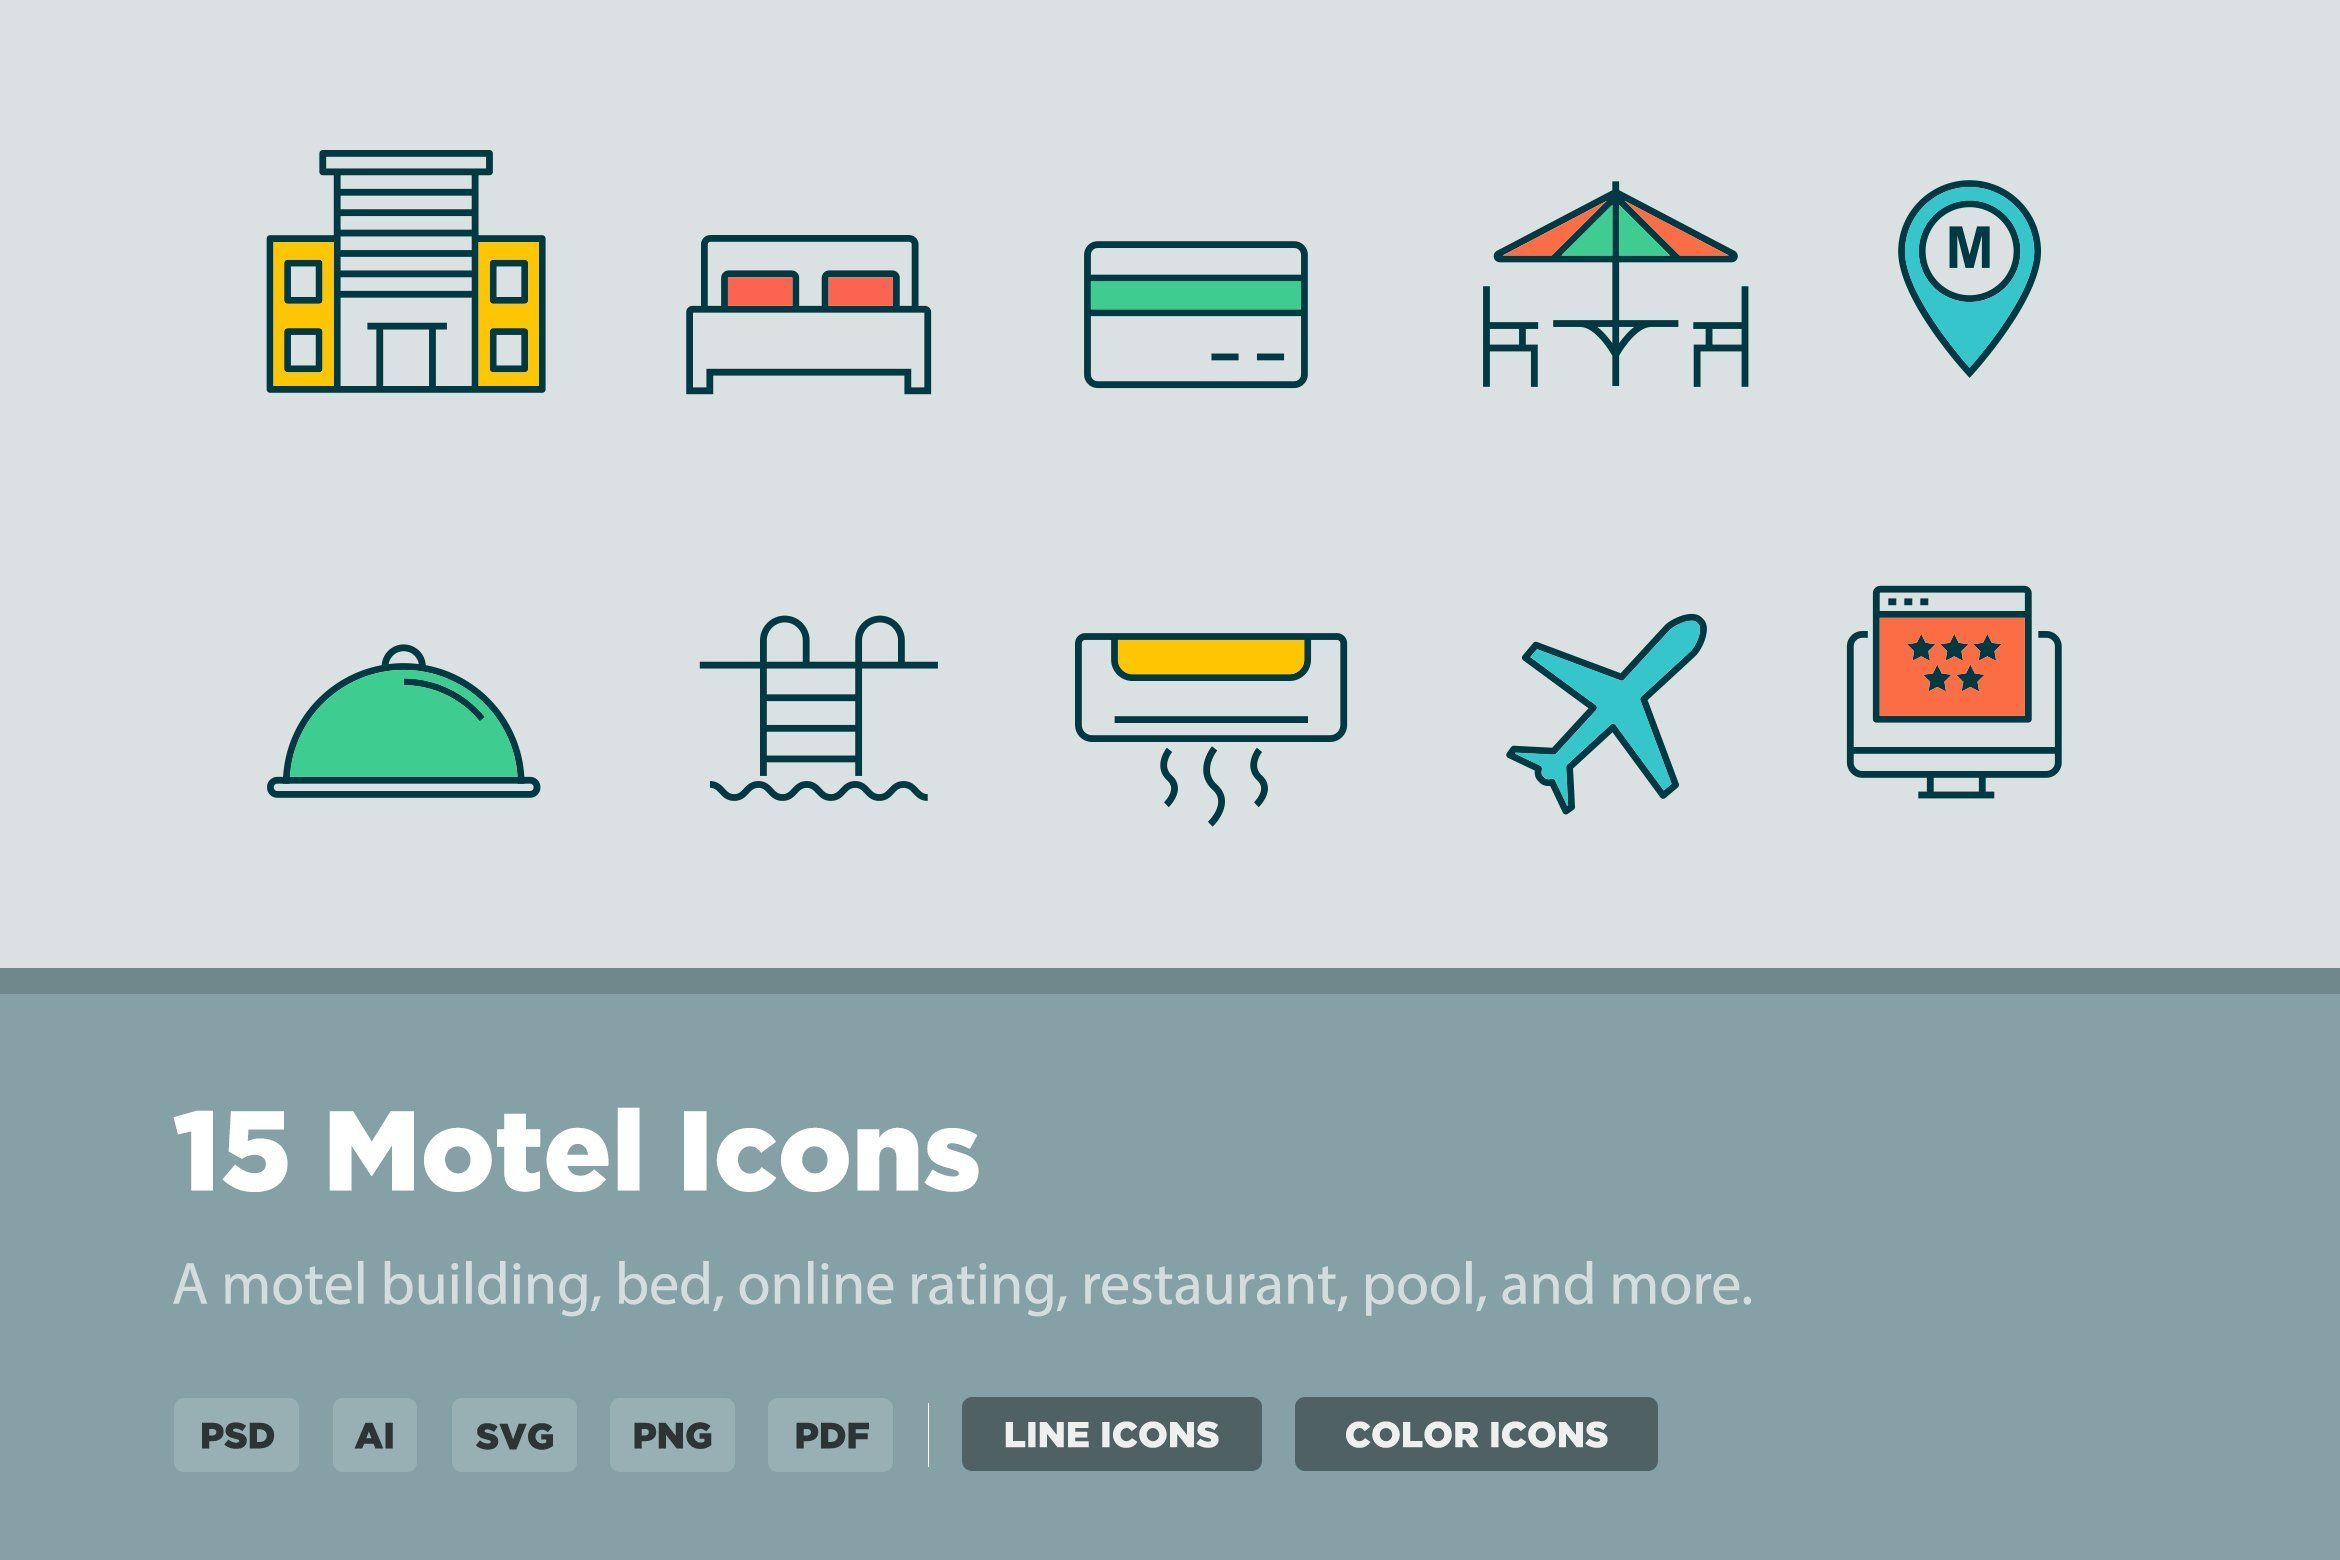 15 Motel Icons Icon, Heating and air conditioning